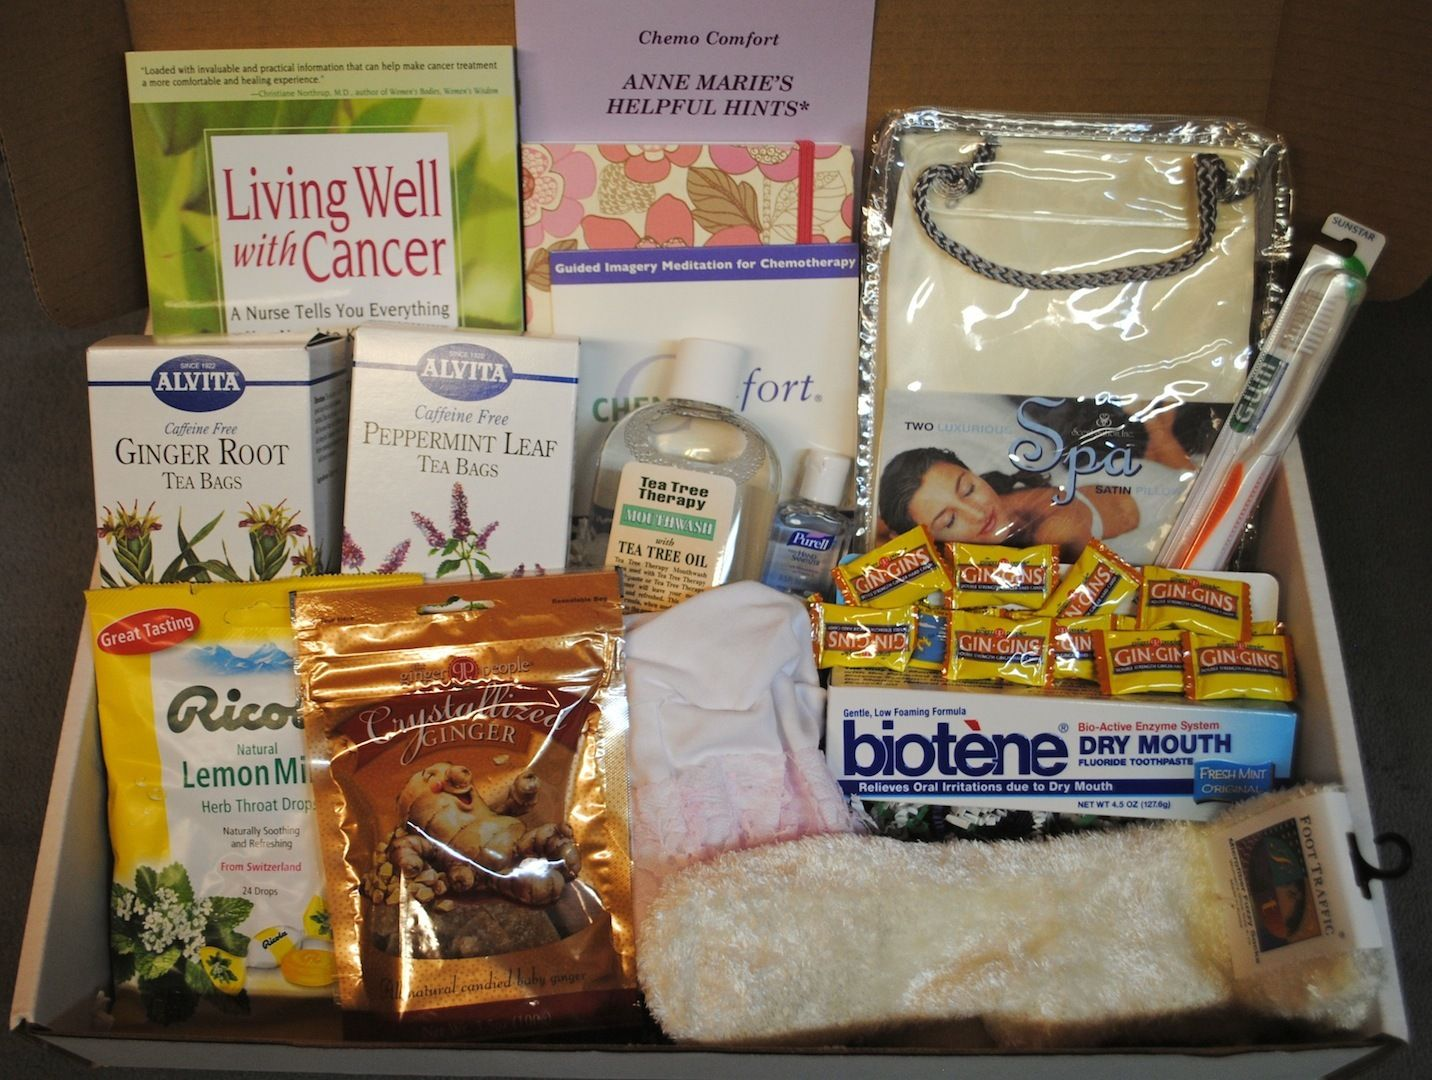 Chemo Comfort Kits Breast Cancer Survivail Kit Idea To